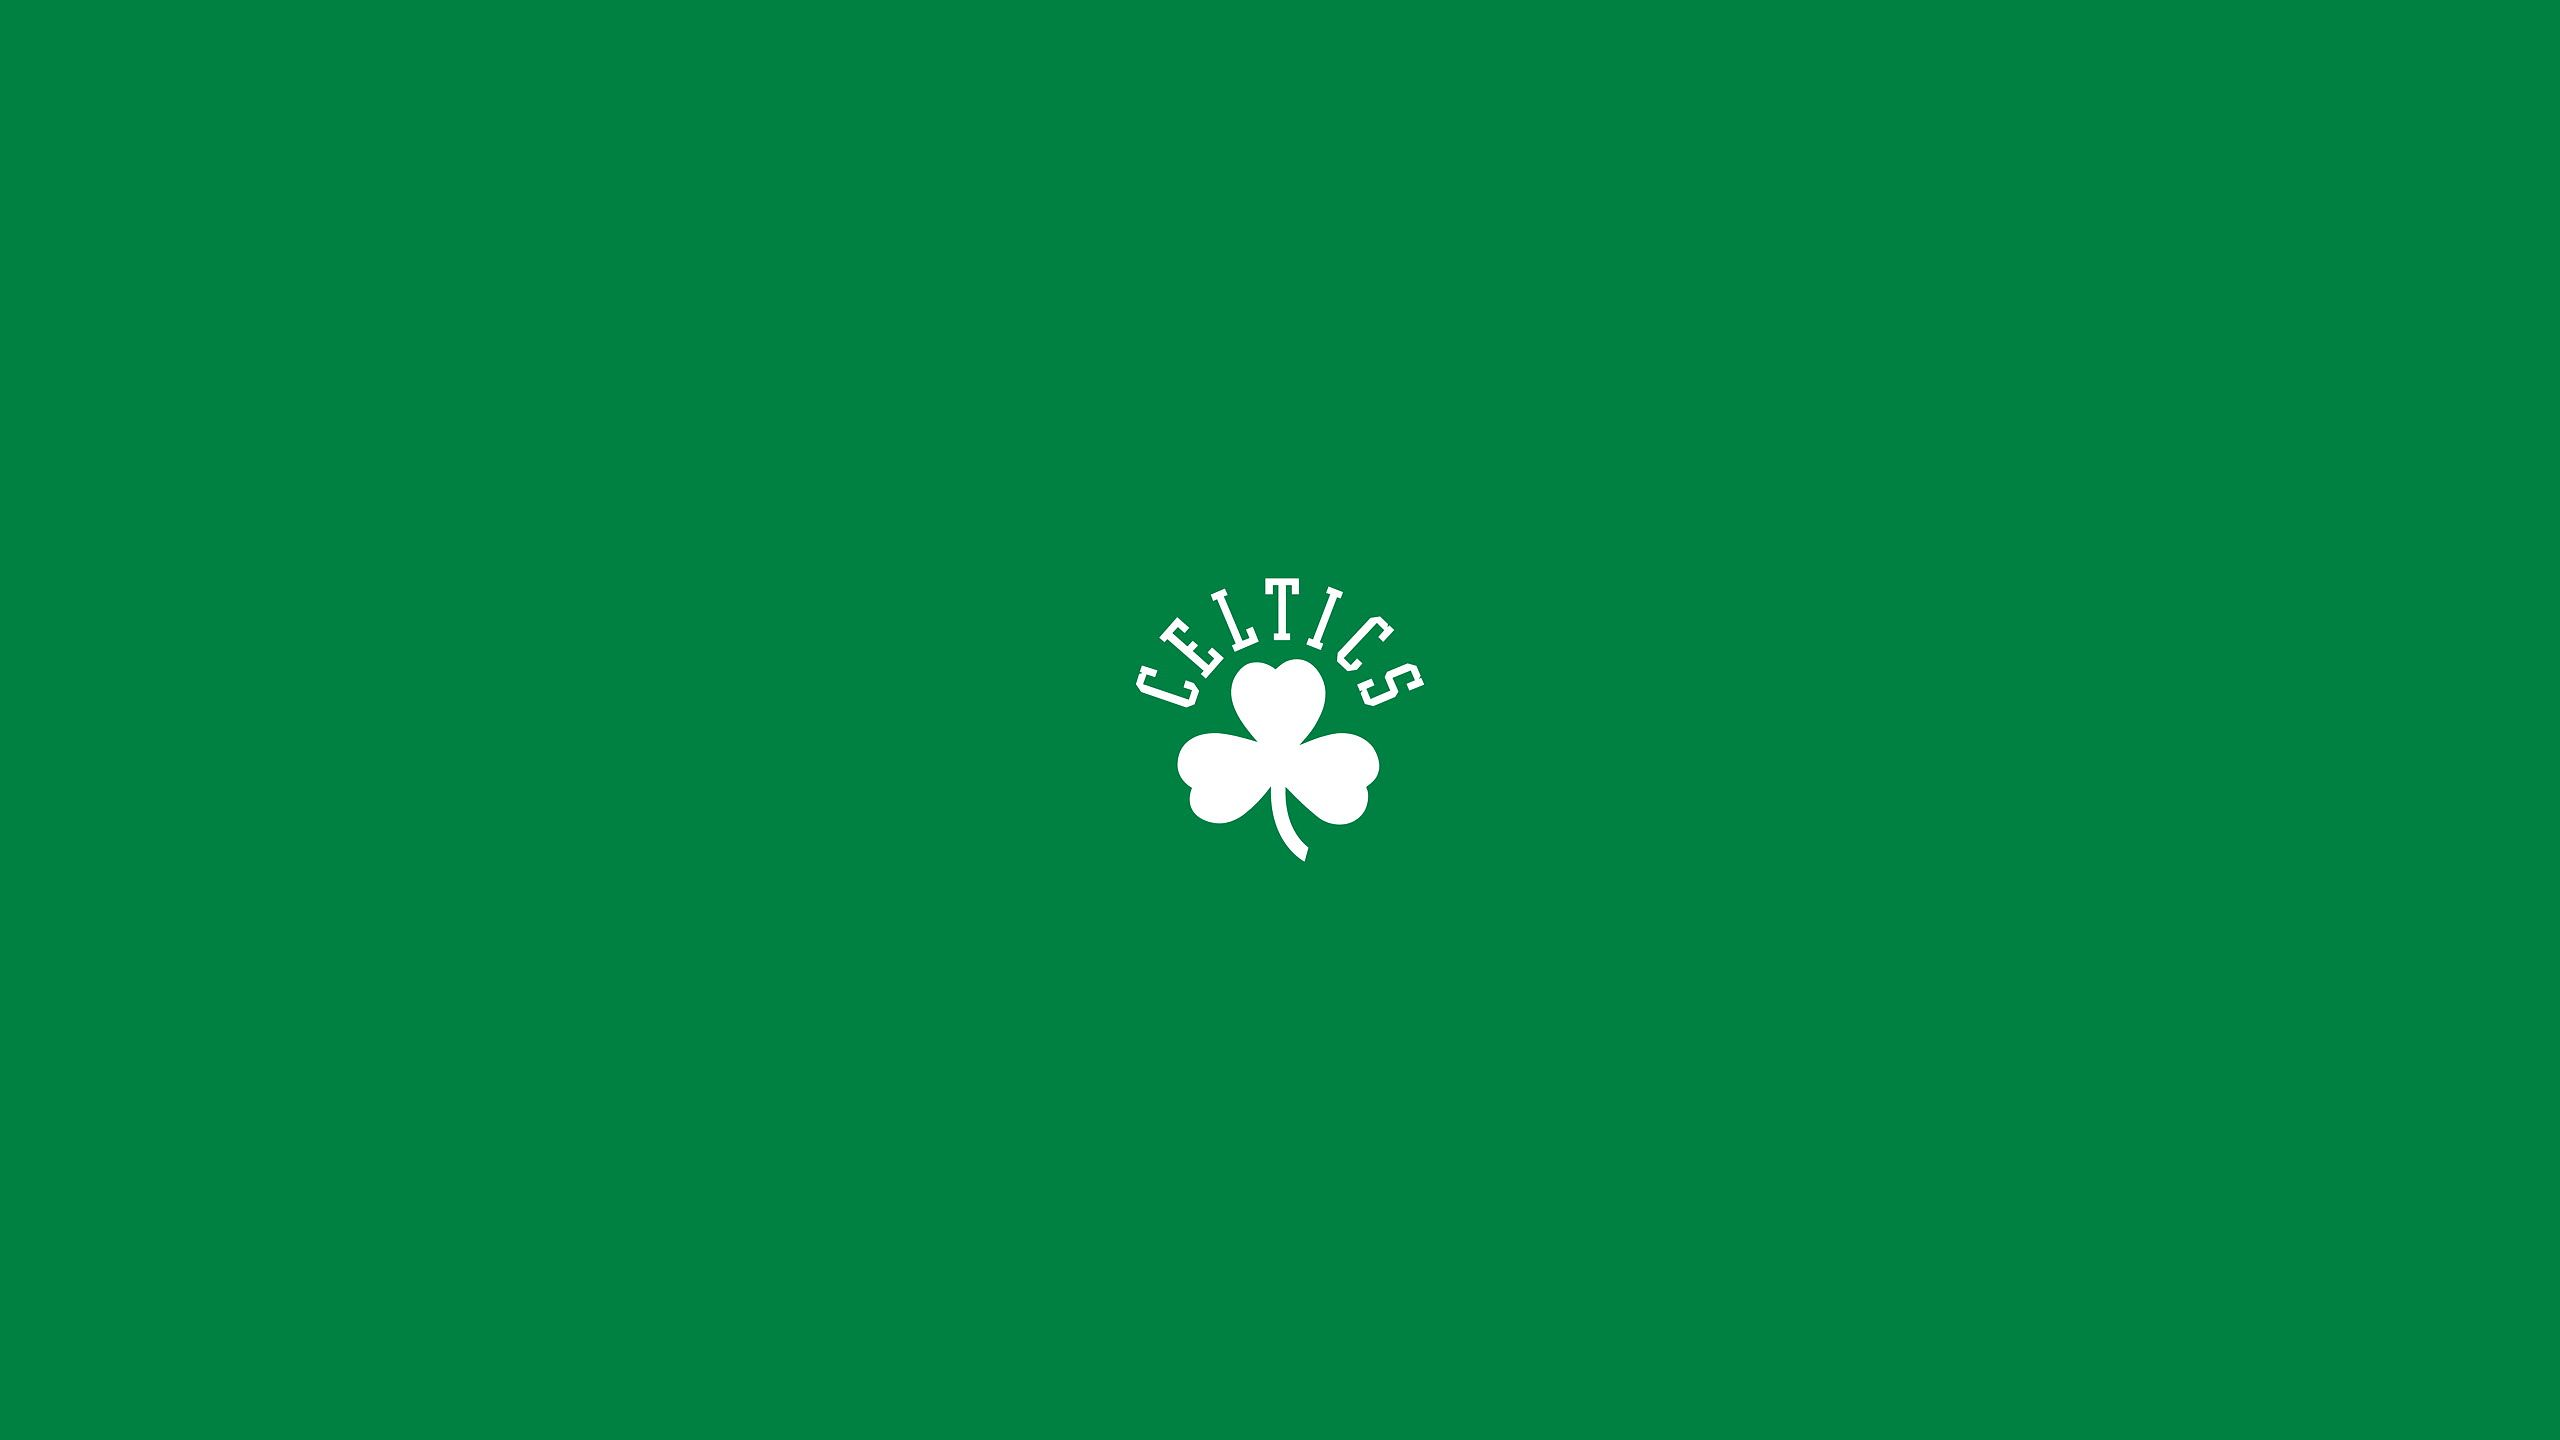 hd celtics wallpapers bostonceltics